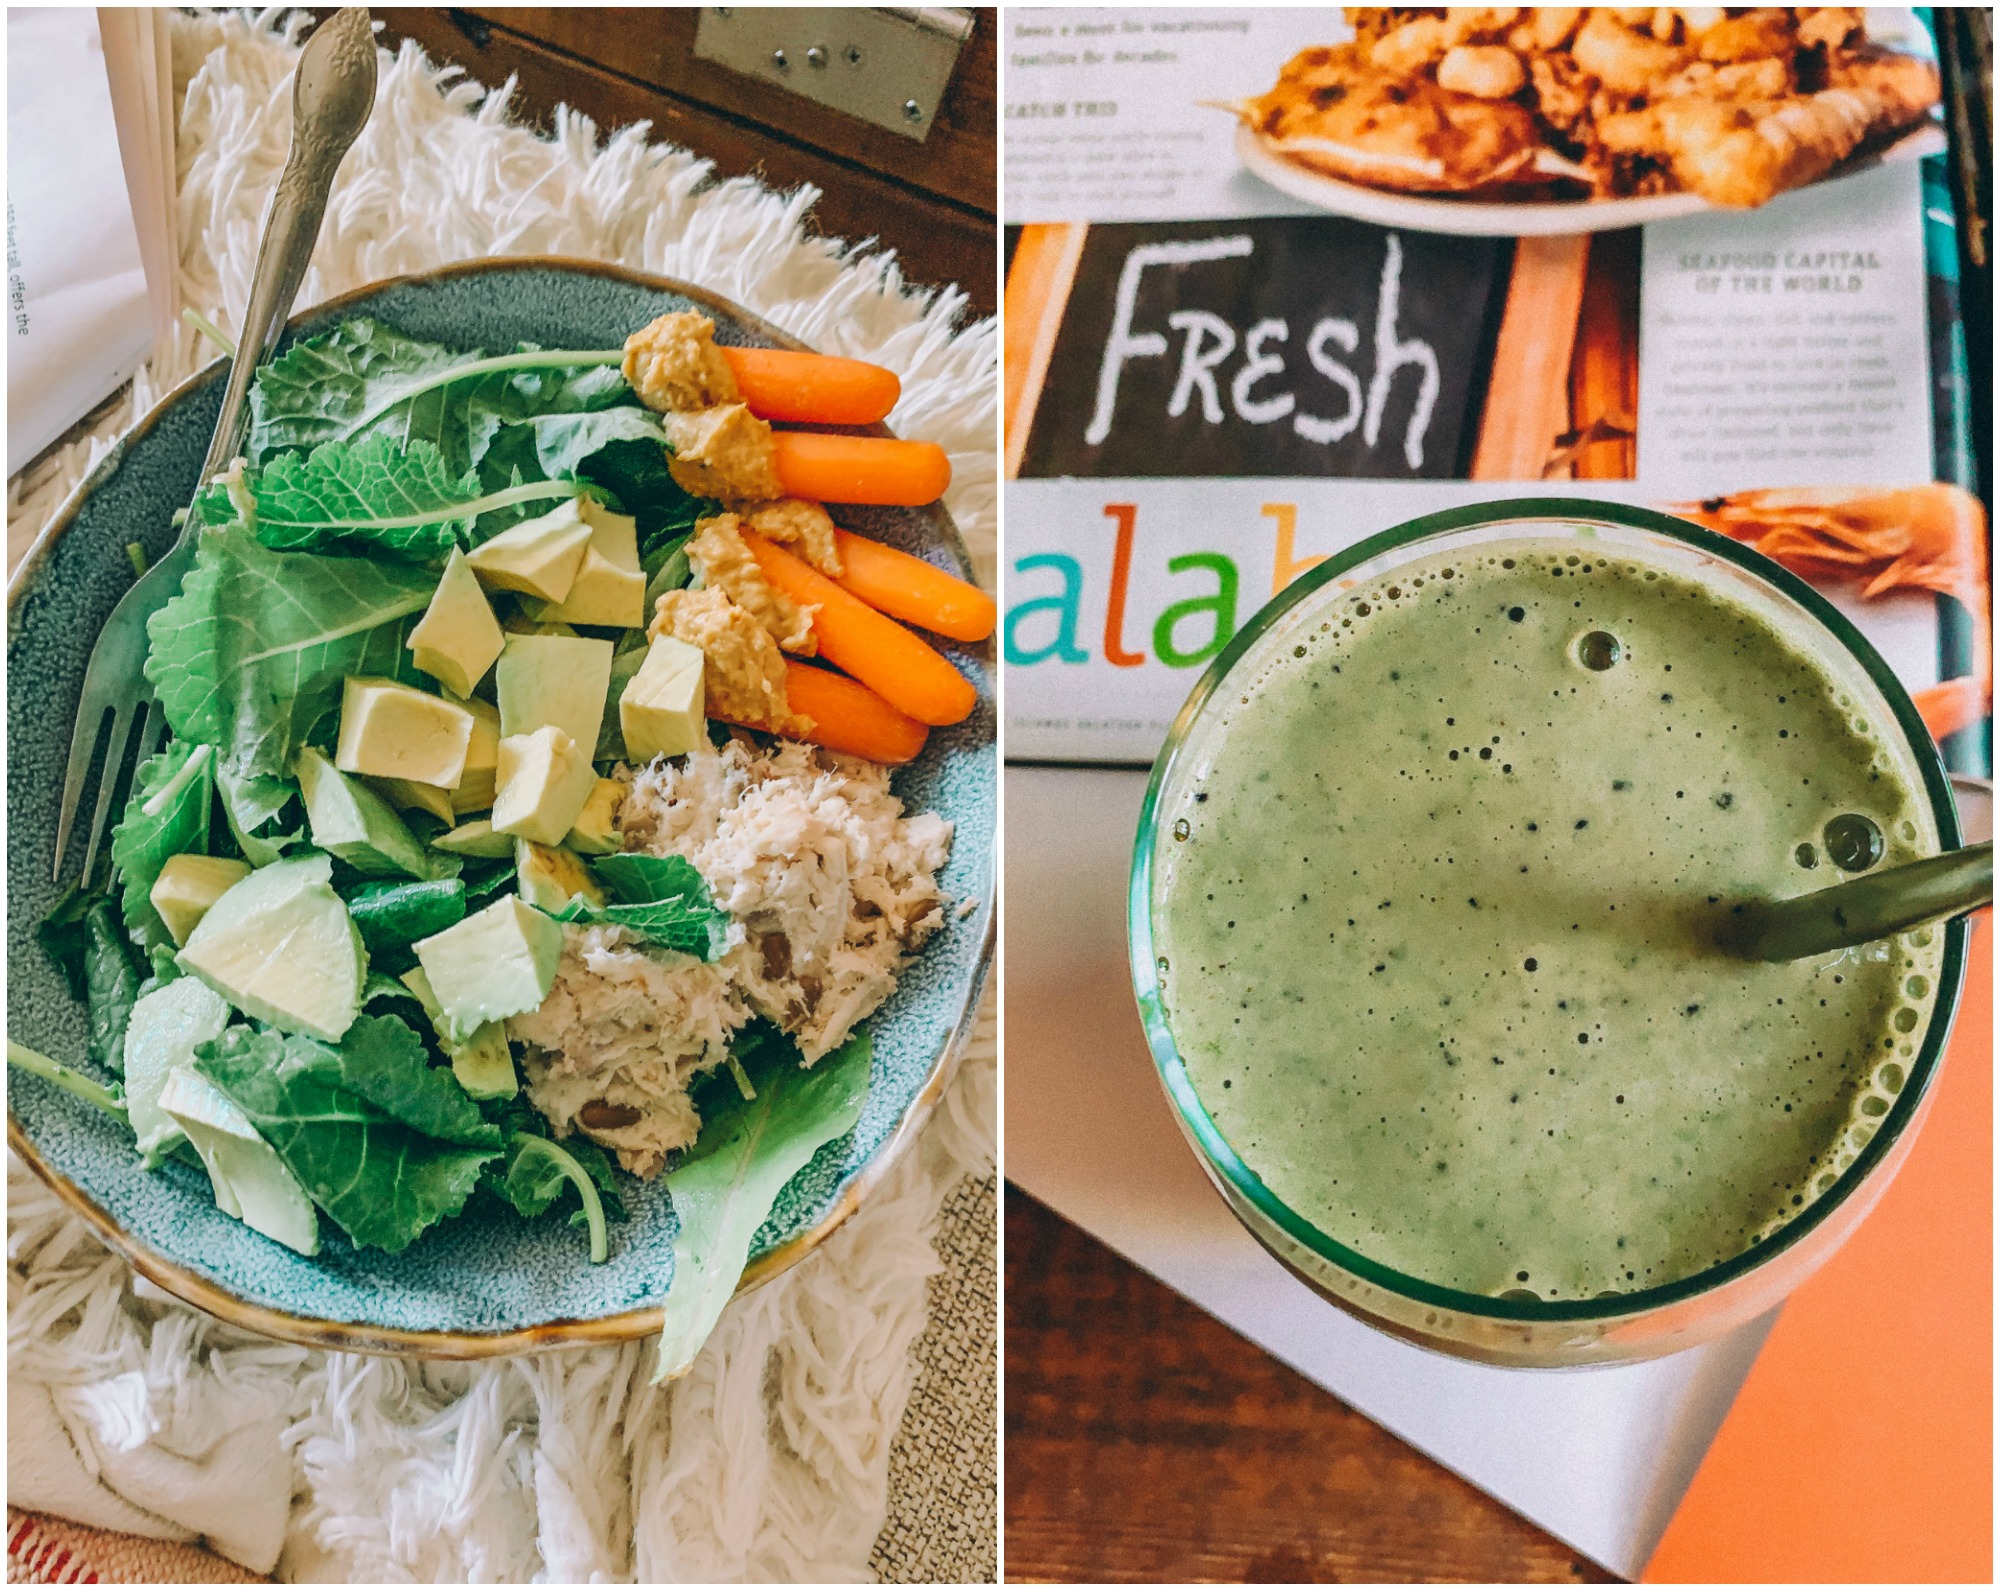 healthy food chicken salad protein iron baby kale smoothie green dairy free gluten free hummus carrots